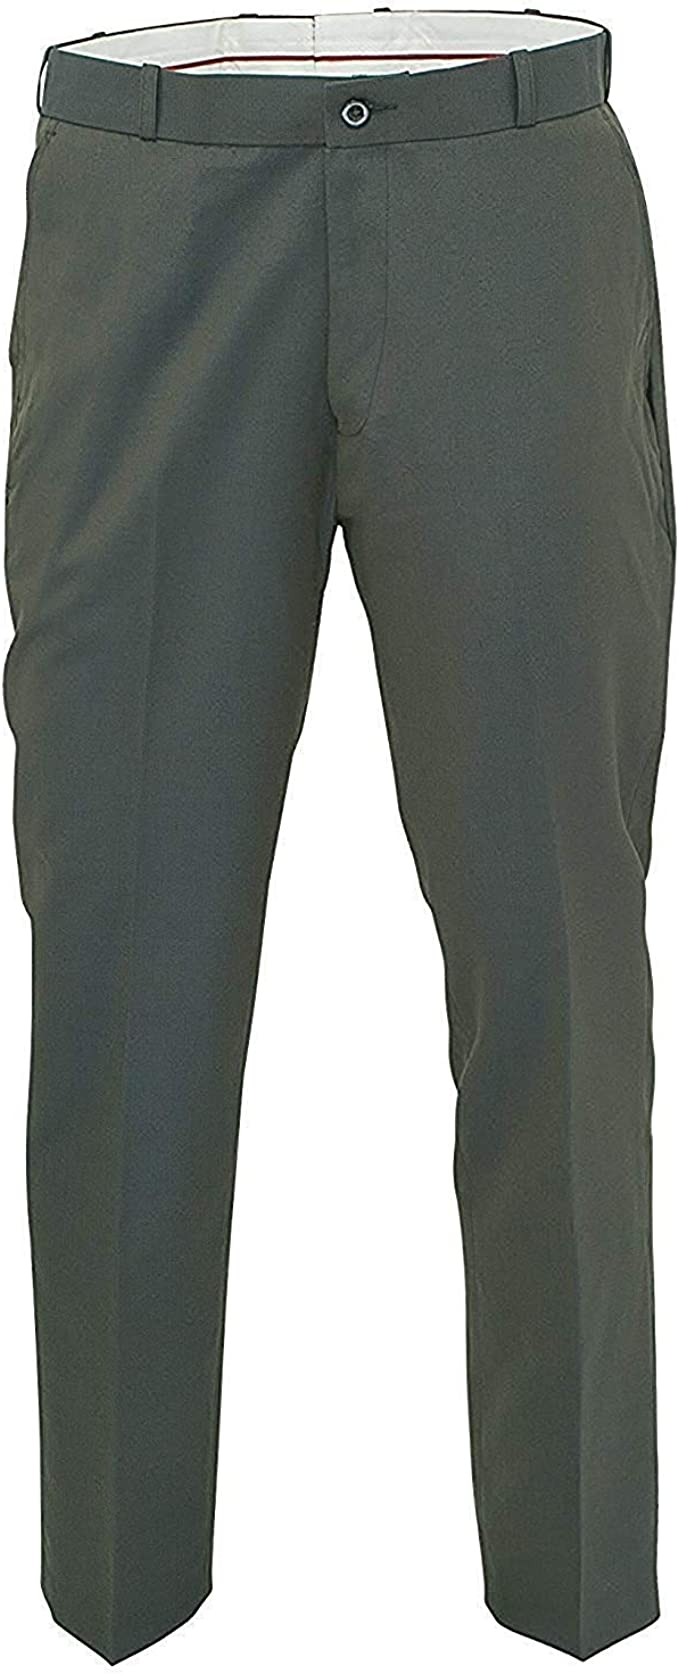 60s – 70s Mens Bell Bottom Jeans, Flares, Disco Pants Relco Mens Classic Green Tonic Stay Press Trousers £39.99 AT vintagedancer.com